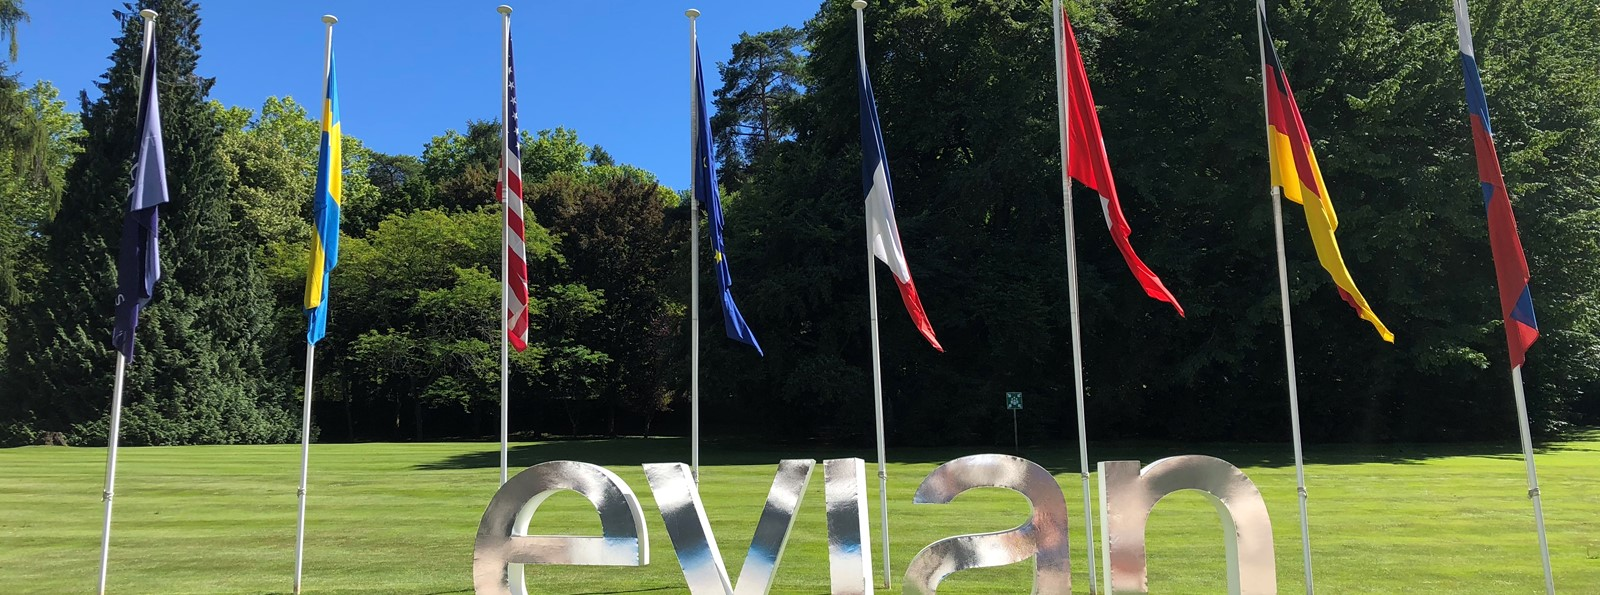 Evian Resort: Food, fondue & fun in France